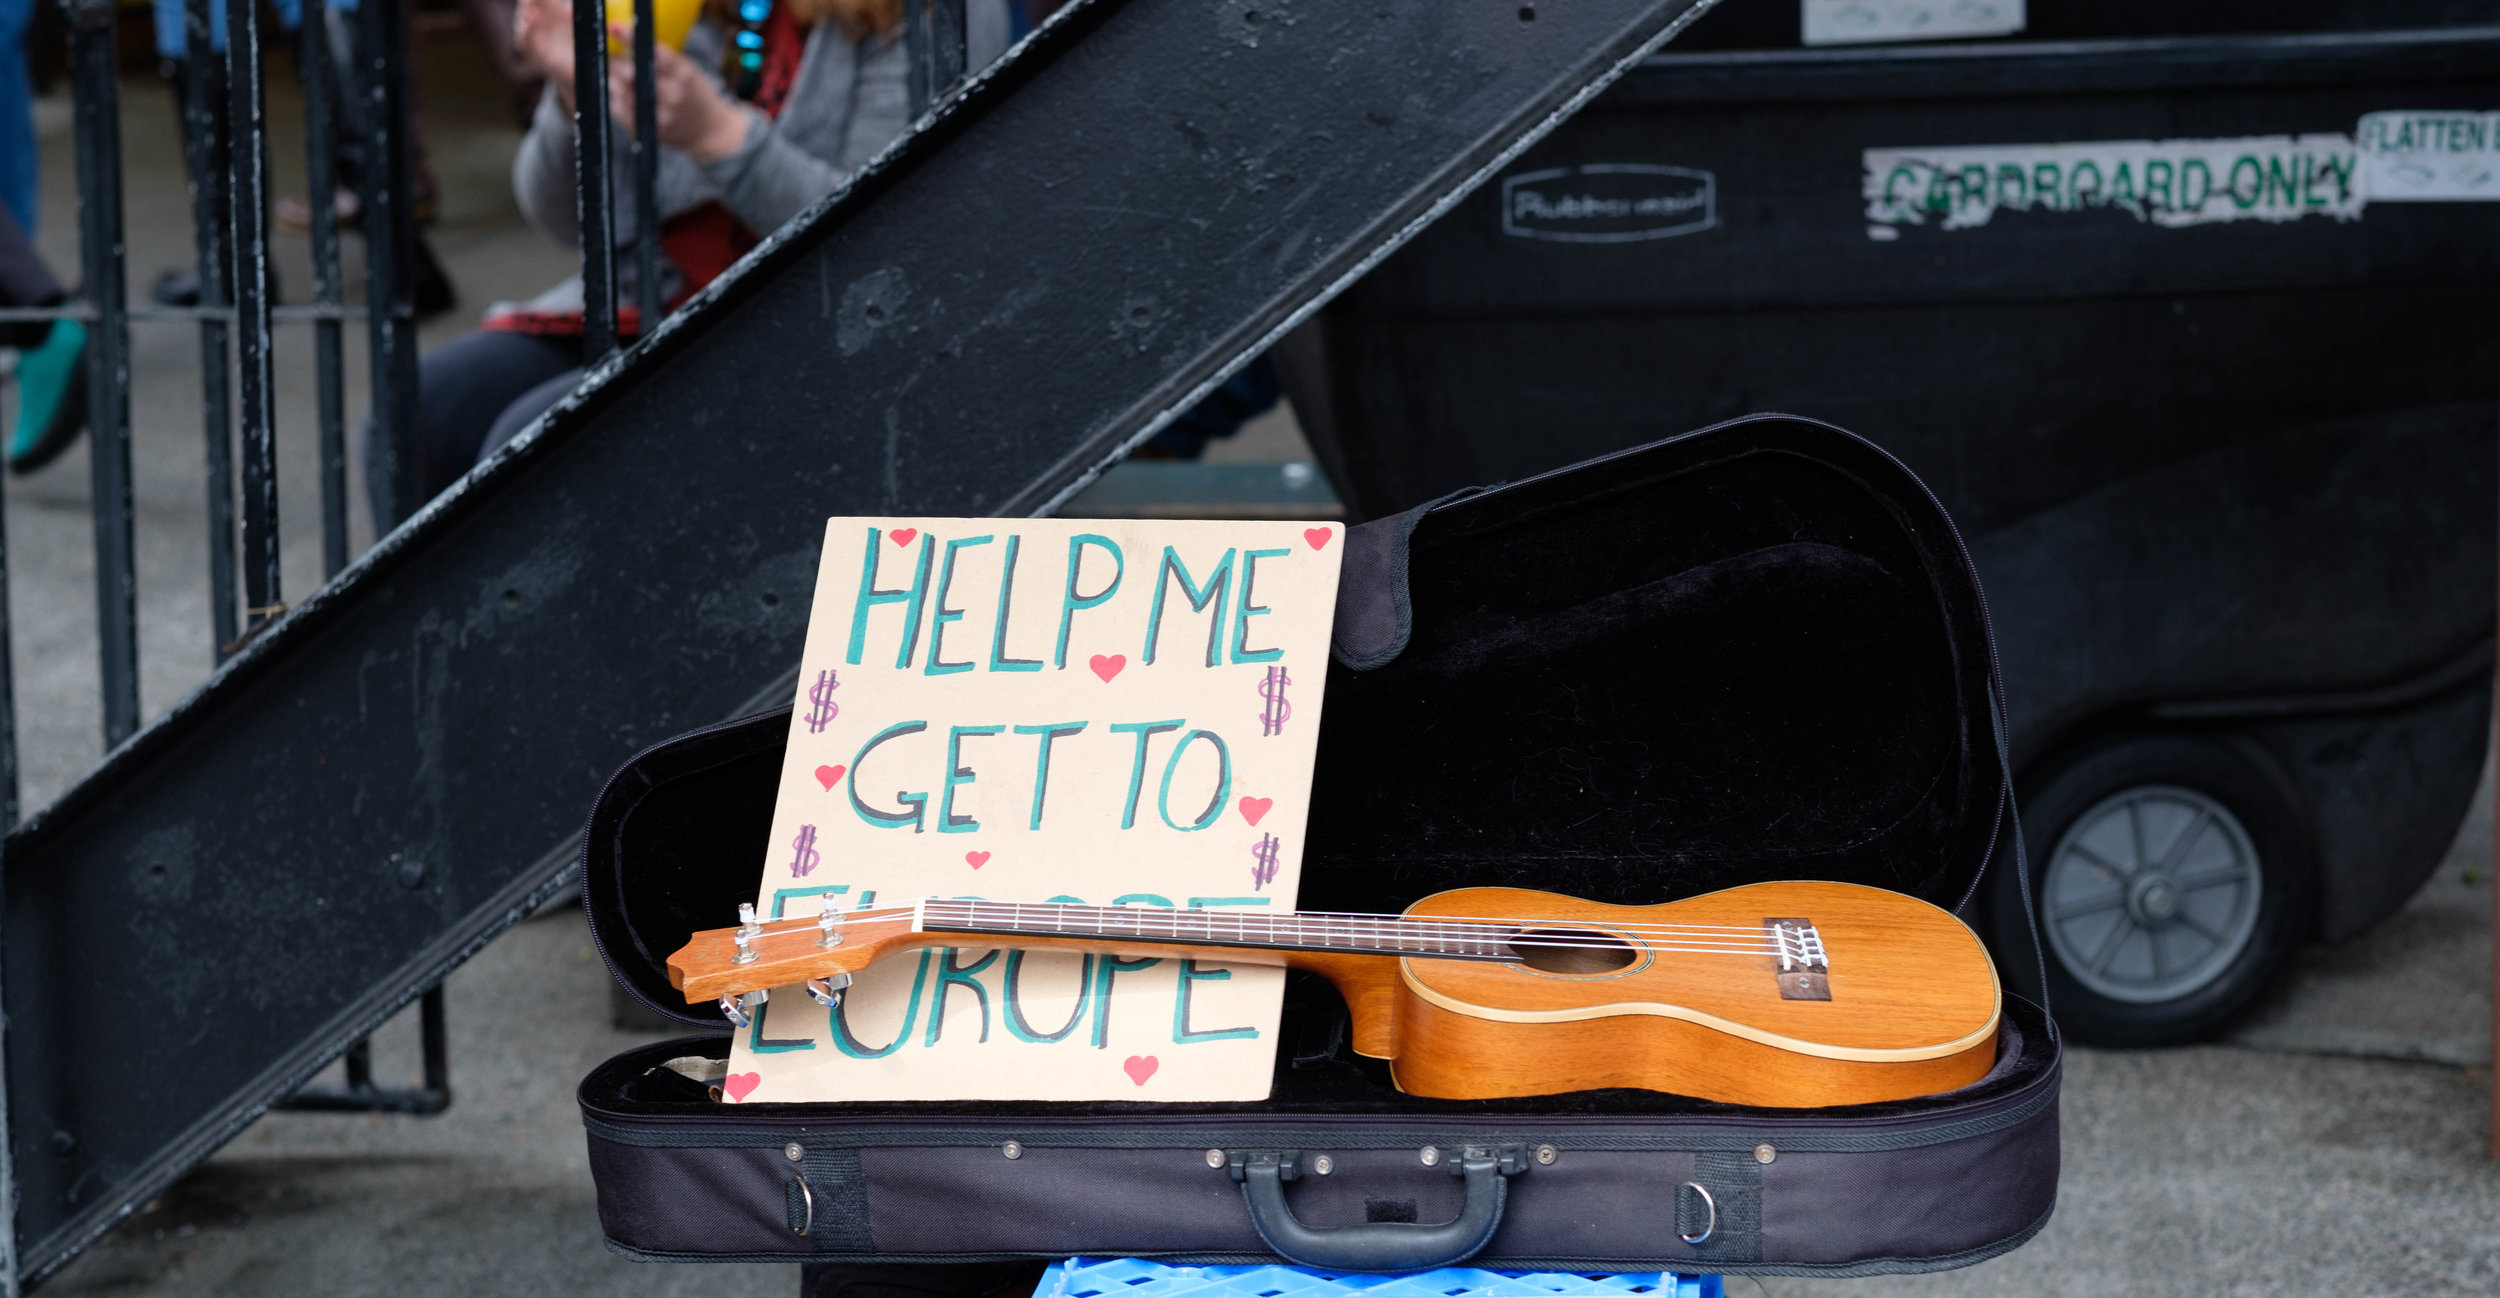 Busking at Pike Place Market, Seattle.